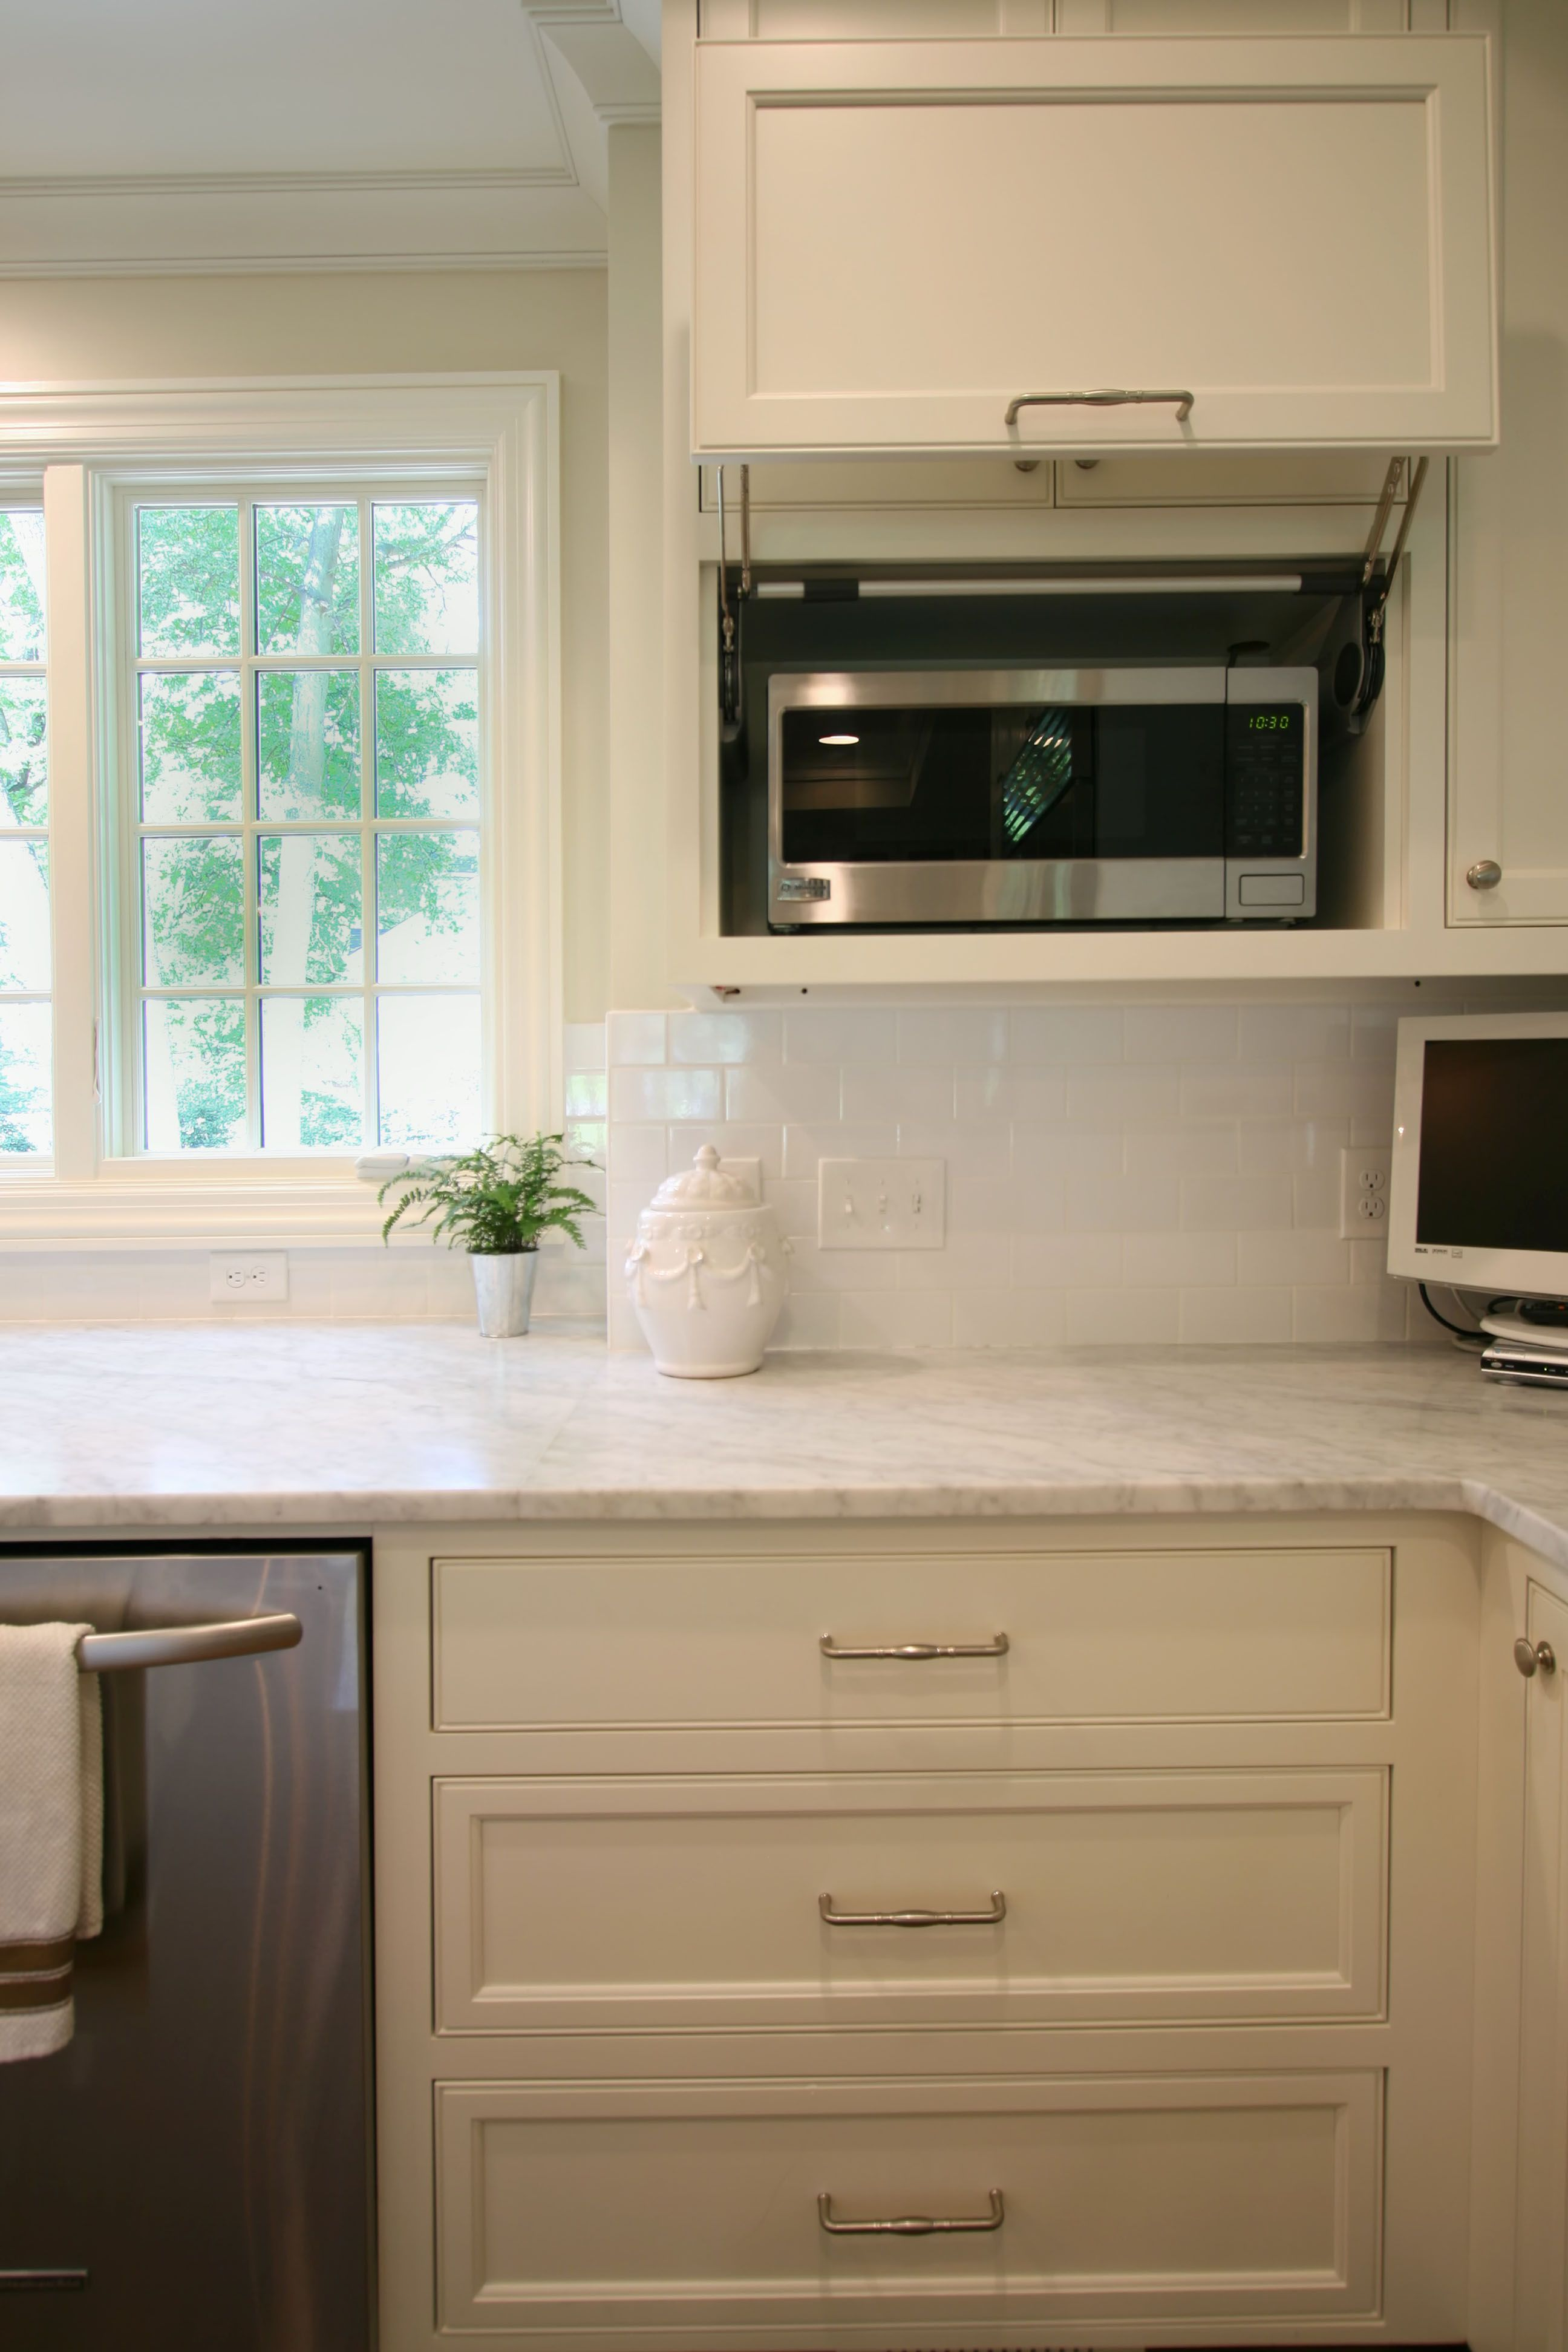 This Cabinet Is A Great Place To Put Your Microwave And Keep The Clutter Off The Counter Find Great Ideas Cabinet St Classic White Kitchen Kitchen Kitchen Redo